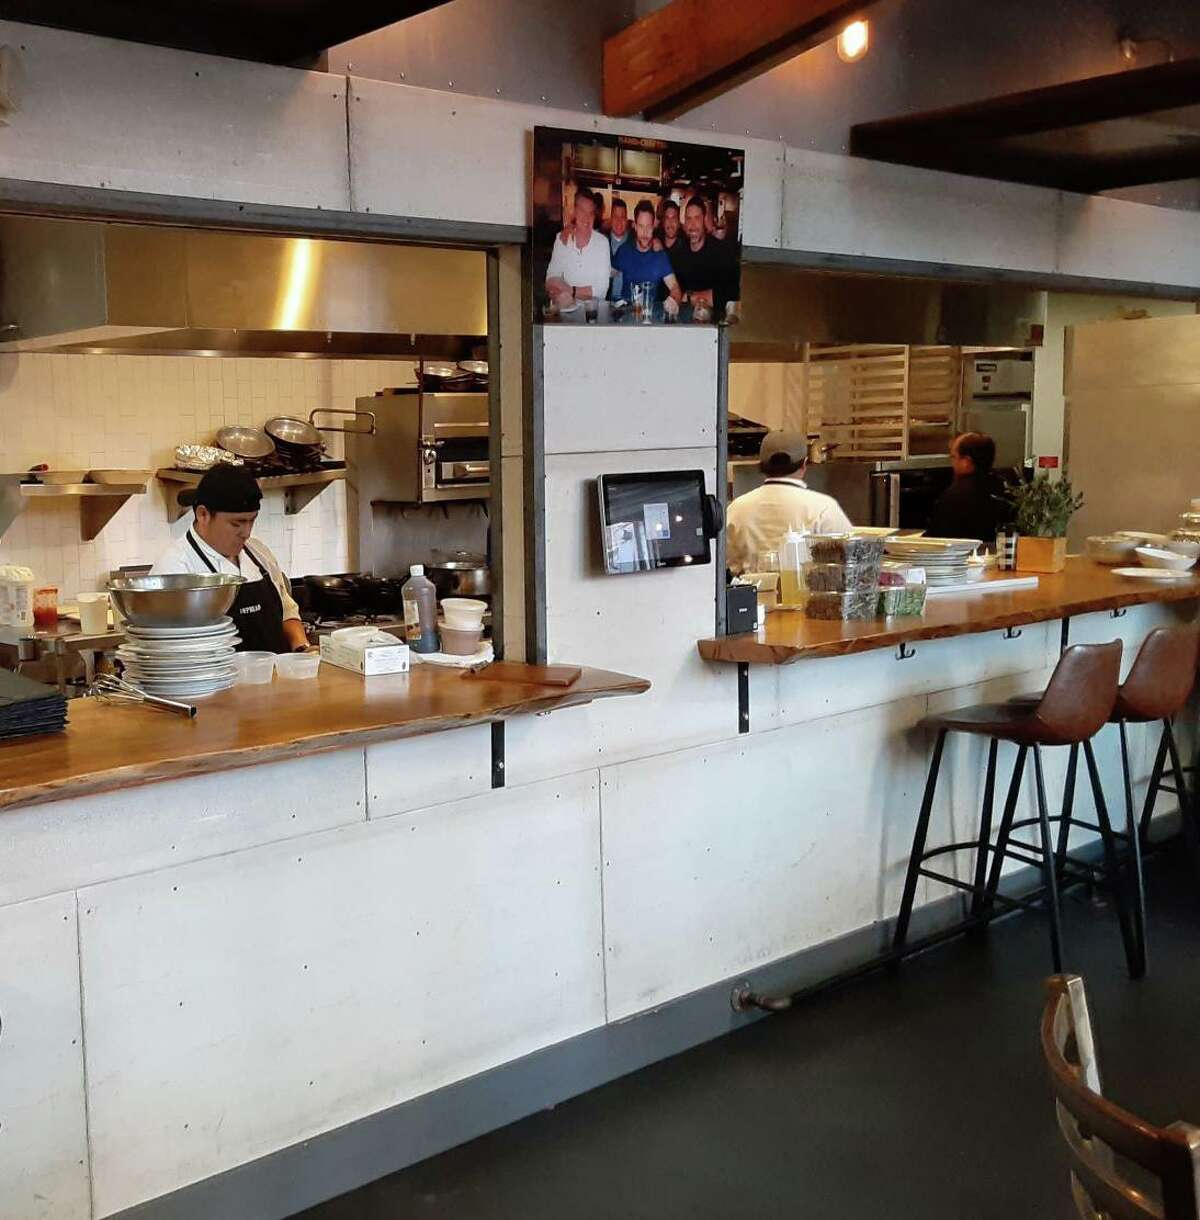 The Spread, at 127 Washington St. in Norwalk, is known for its award-winning